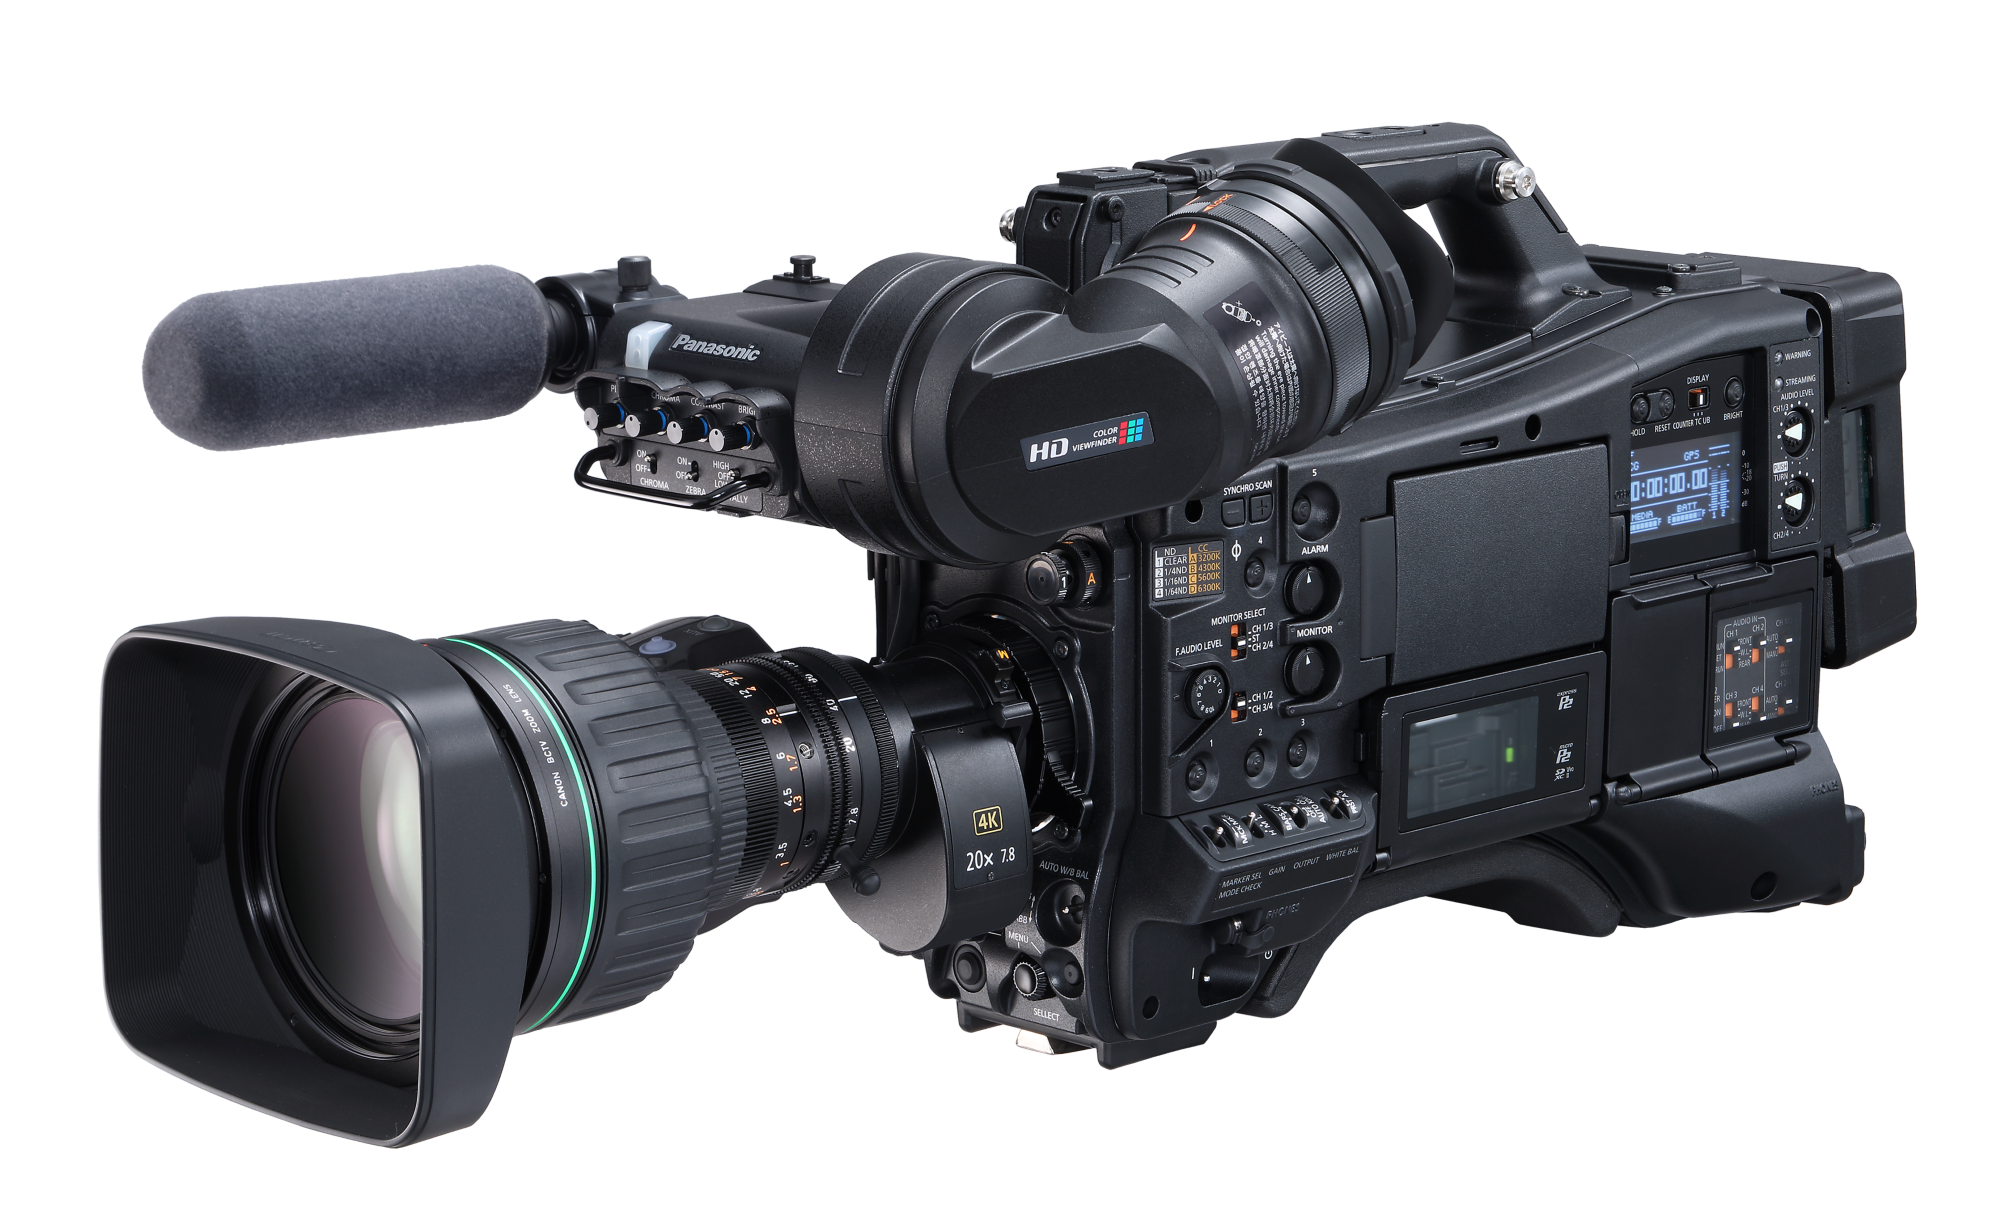 Panasonic AJ-CX4000 4K/HDR Camcorder Available In Late December